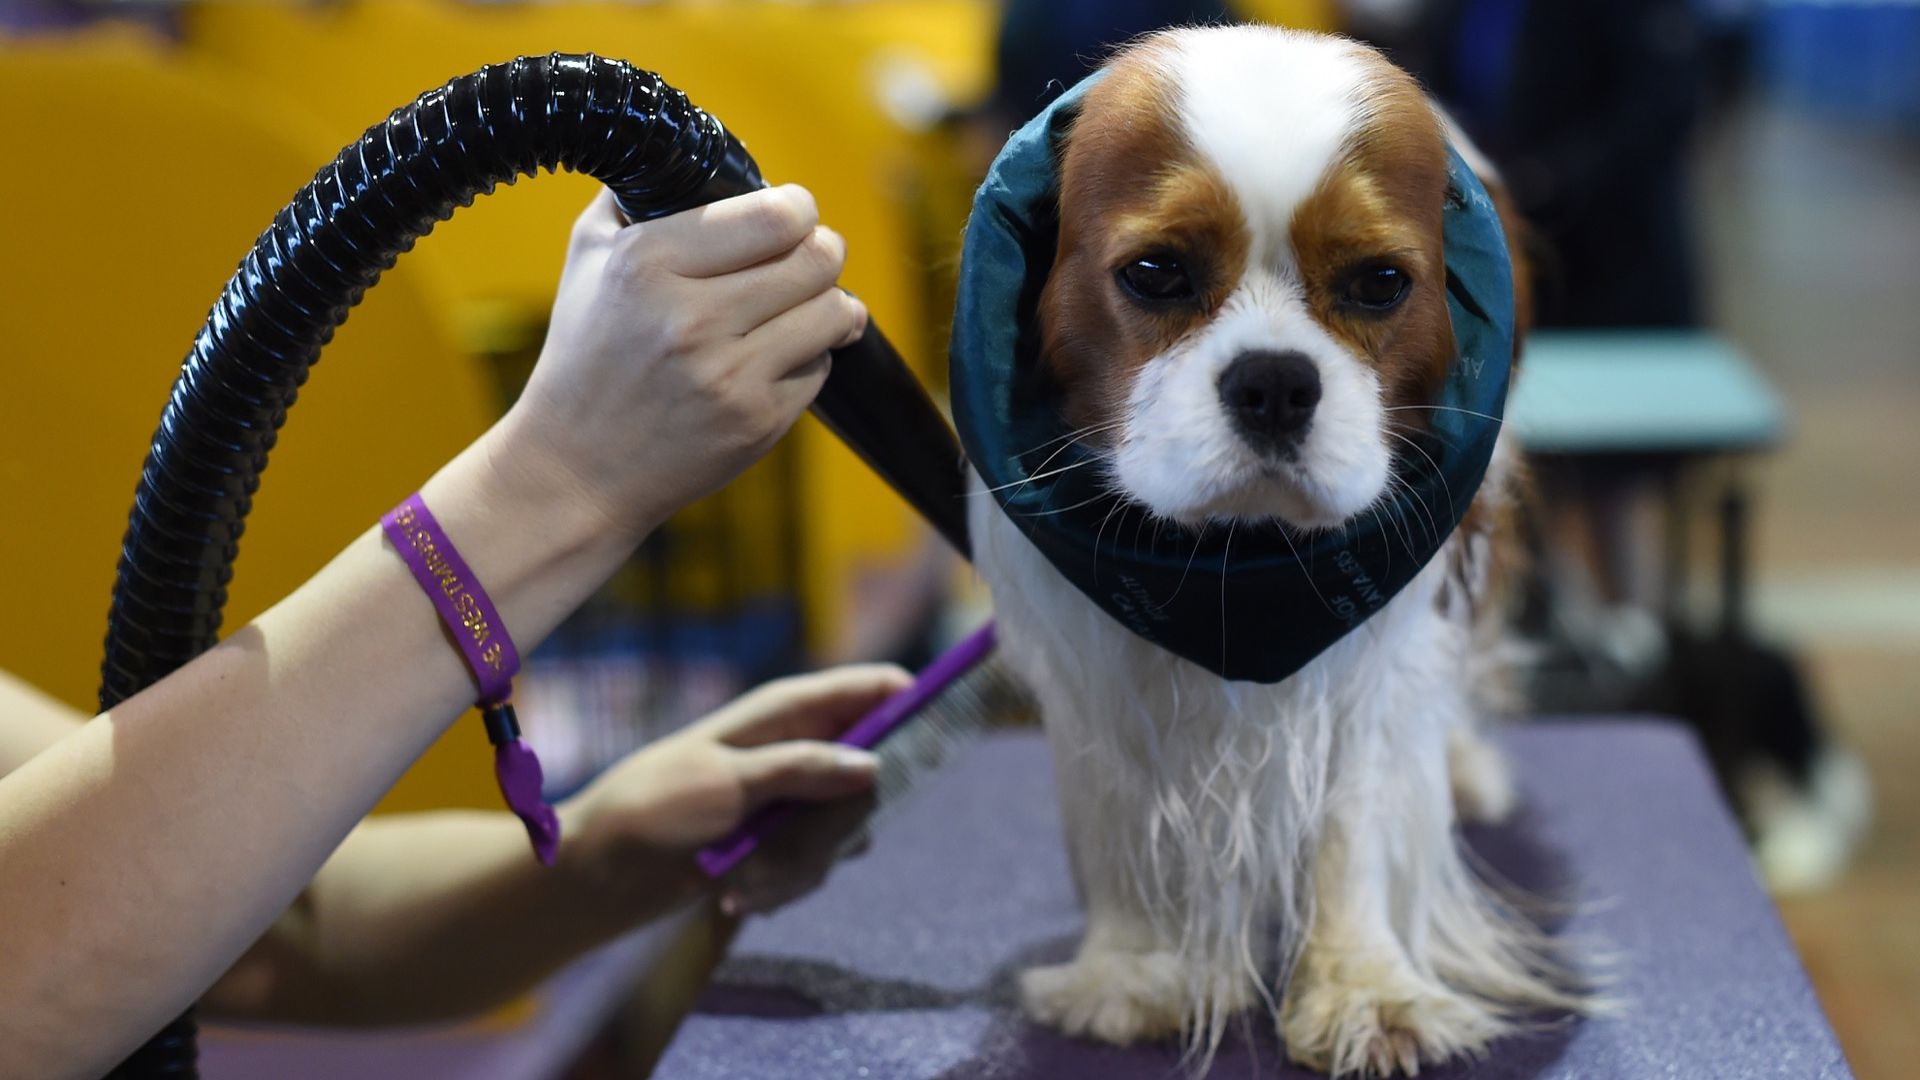 A raw meat diet poses pathogenic risks for pets - Axios